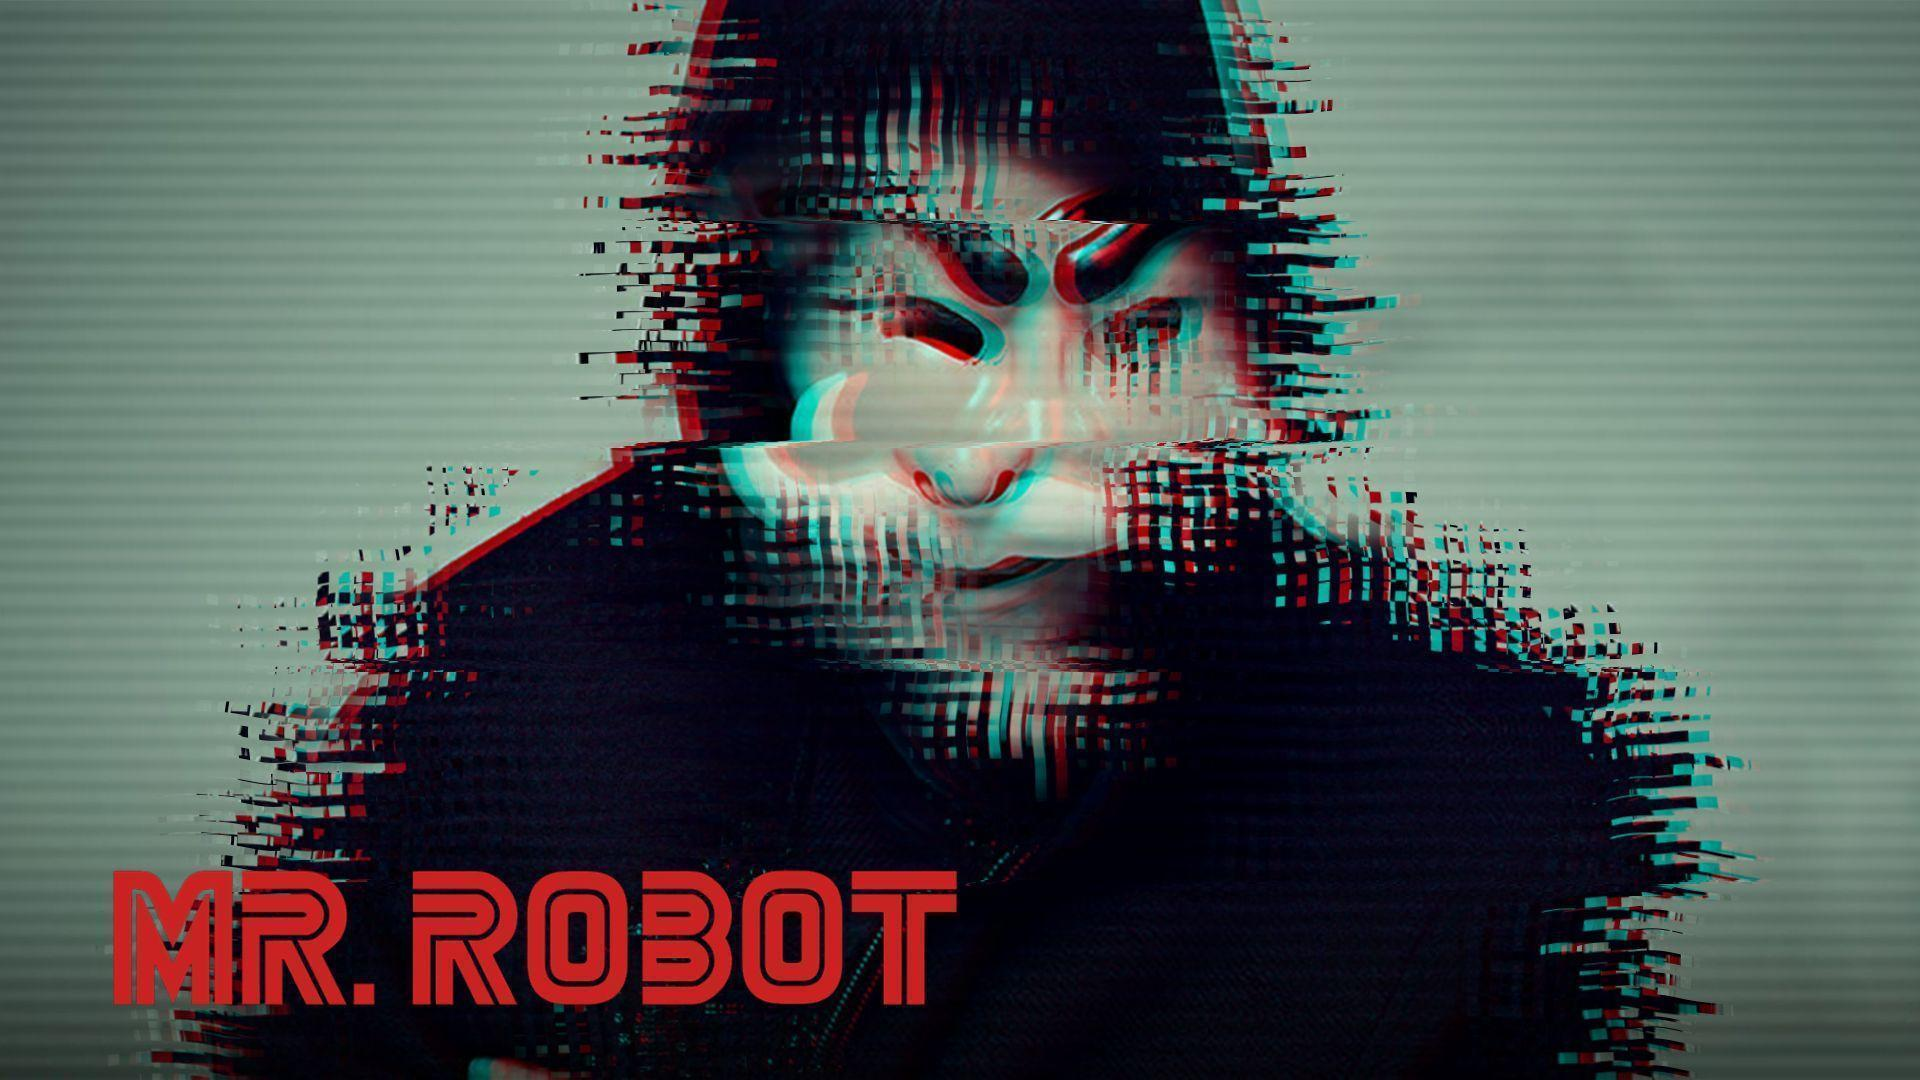 Some Mr. Robot Wallpapers I made